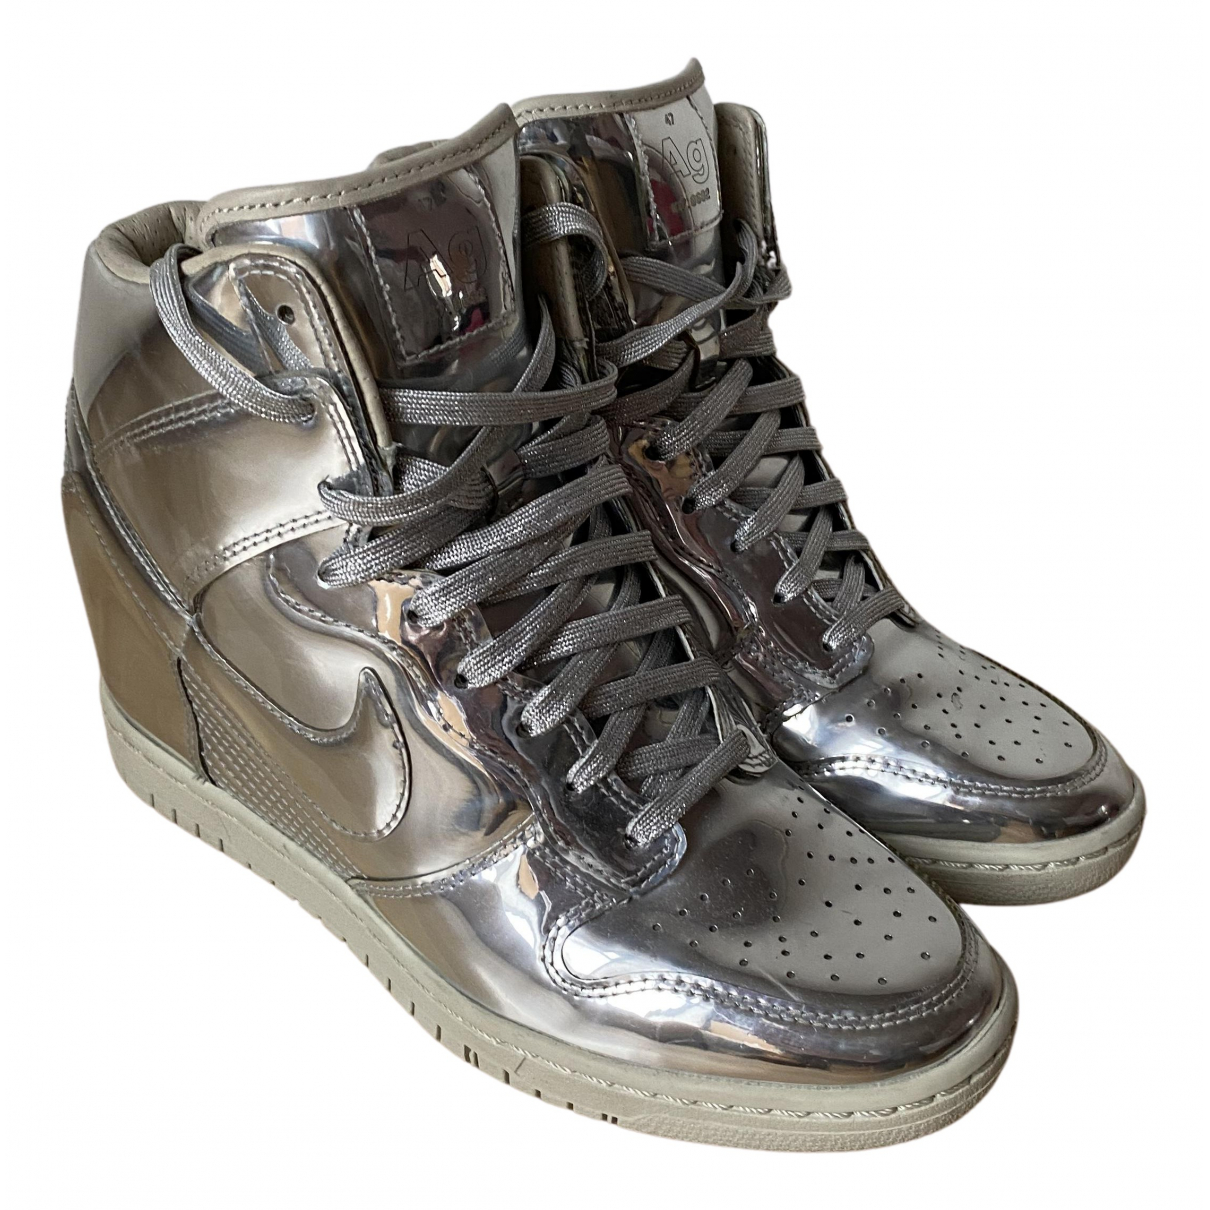 Nike Dunk Sky Silver Patent leather Trainers for Women 40.5 EU